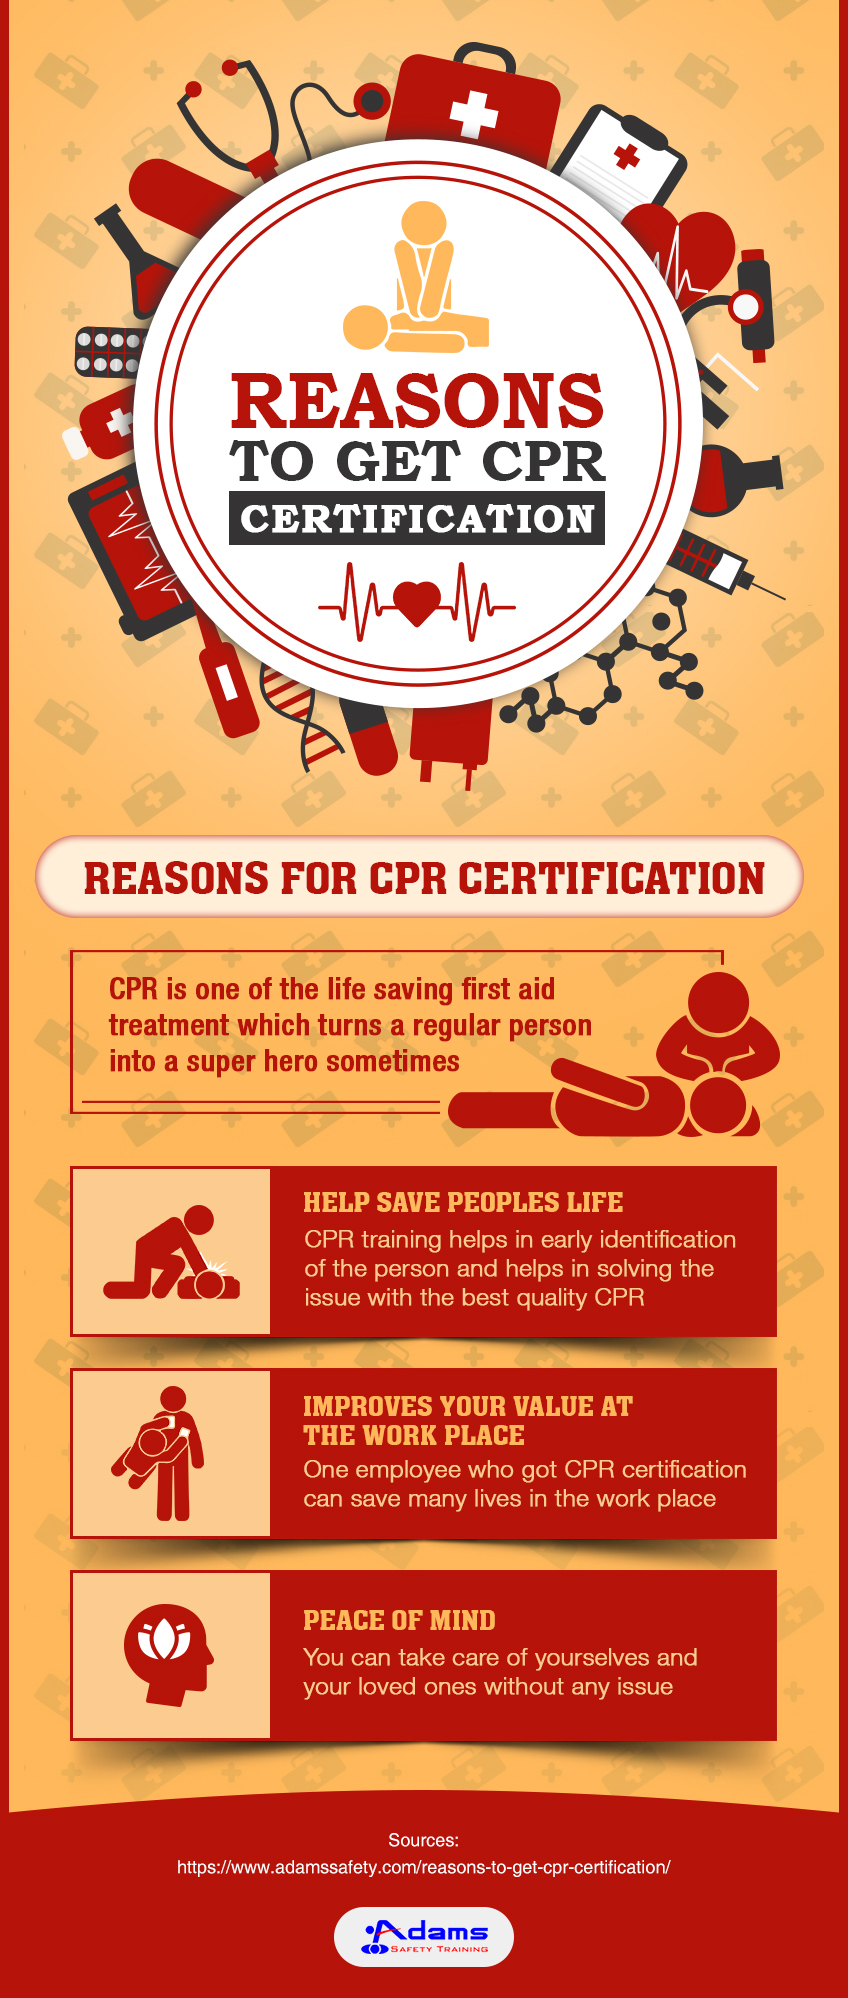 Cpr Certification Can Have A Life Changing Impact Adams Safety